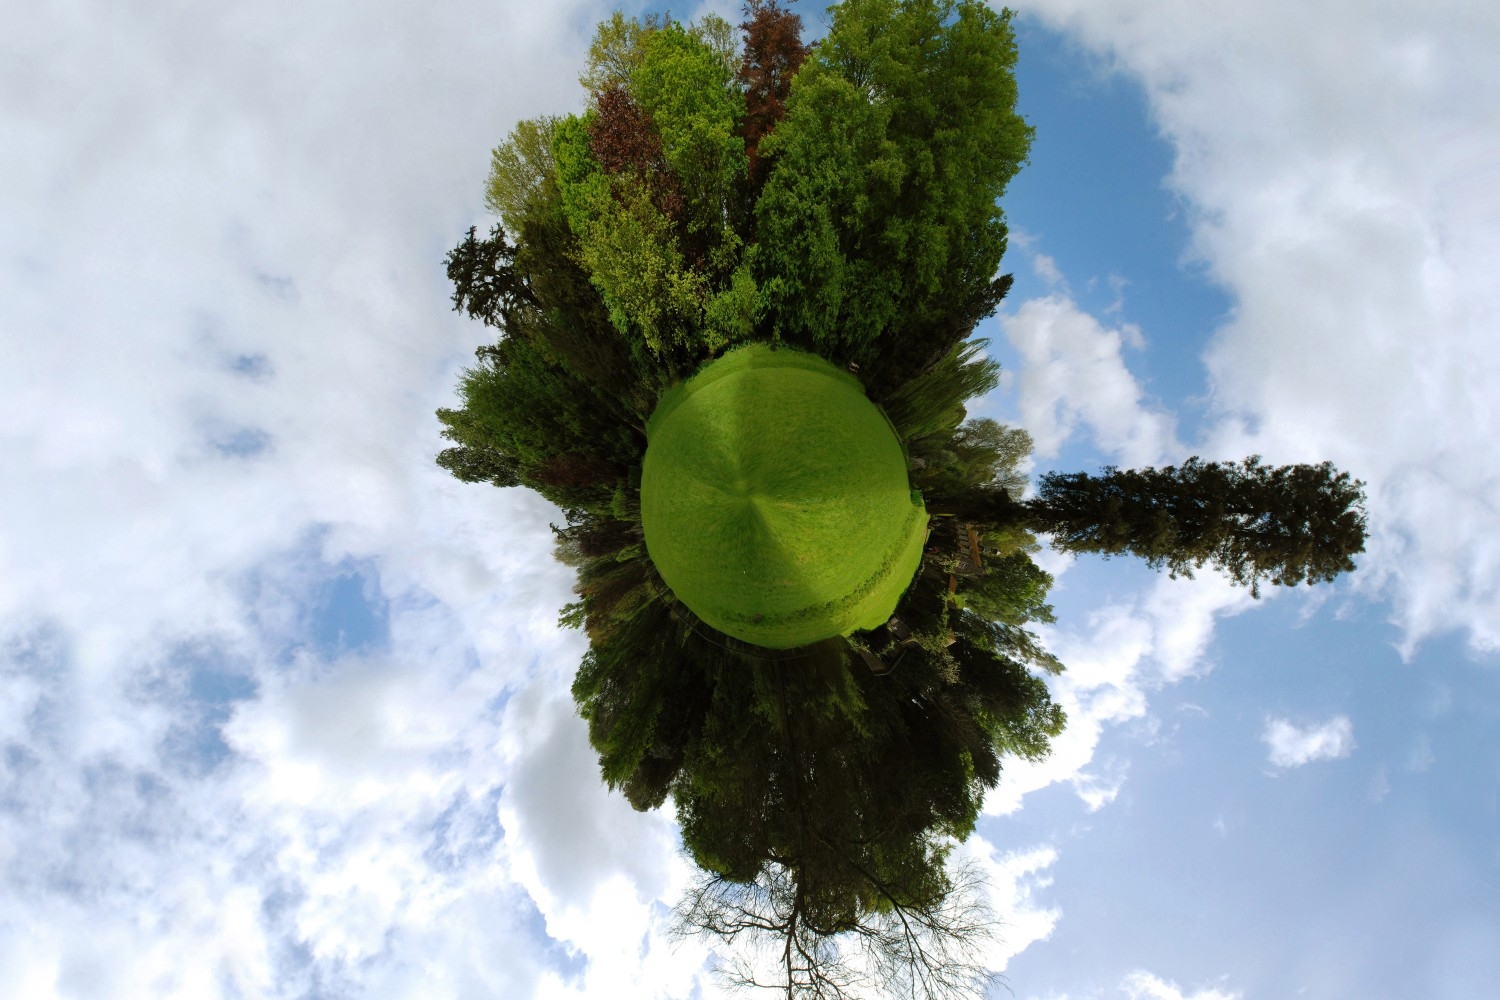 How To Turn Your Panorama Photos Into 360-Degree Little Planet Images